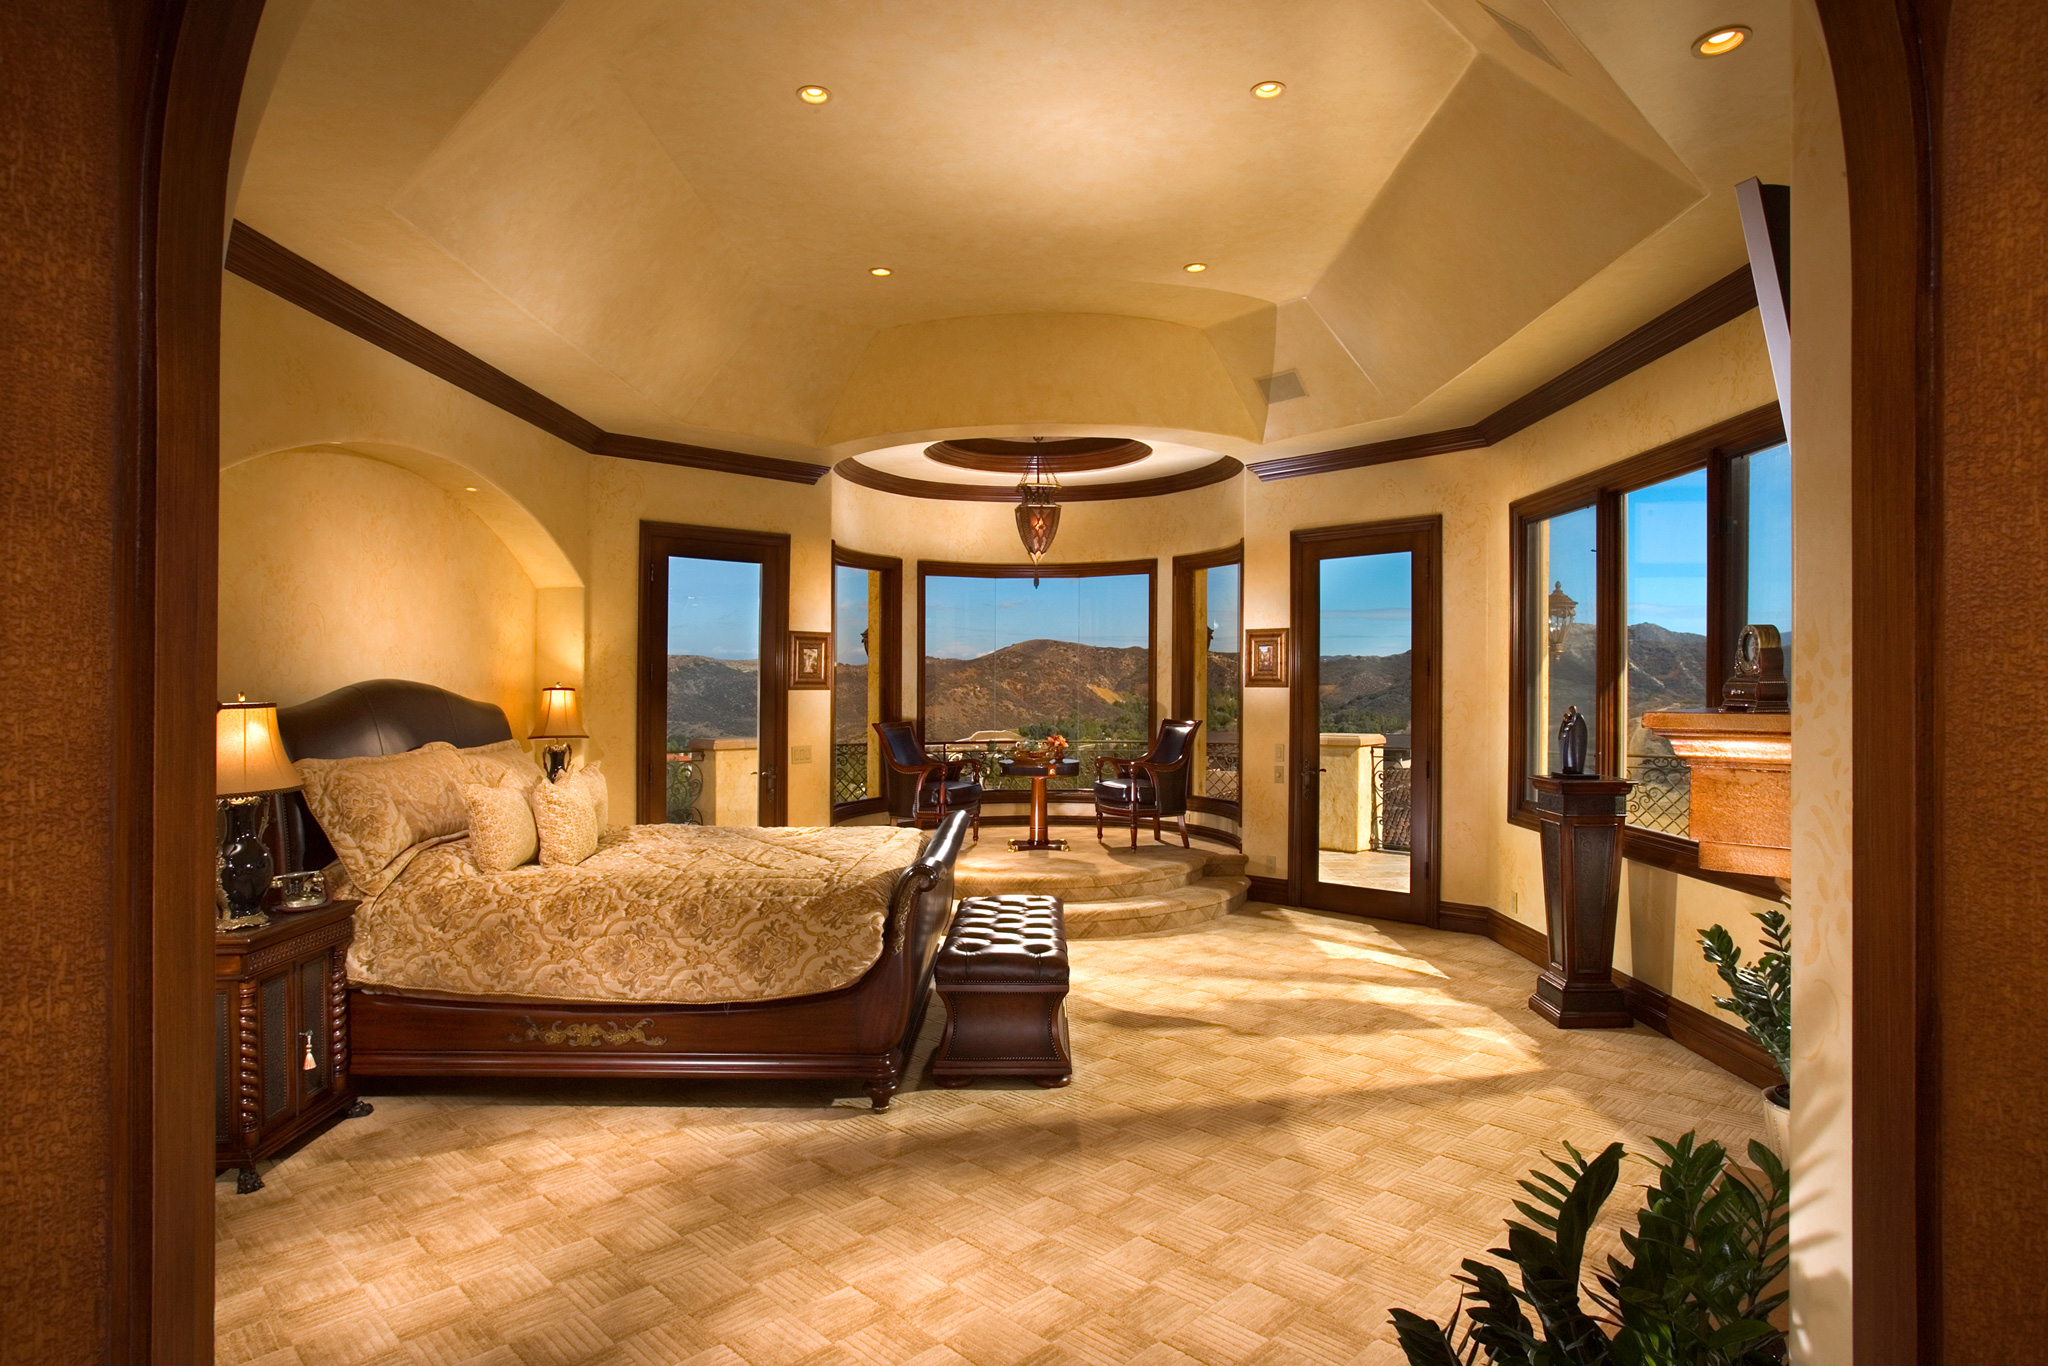 Master bedroom the interior designs for Nice home decor